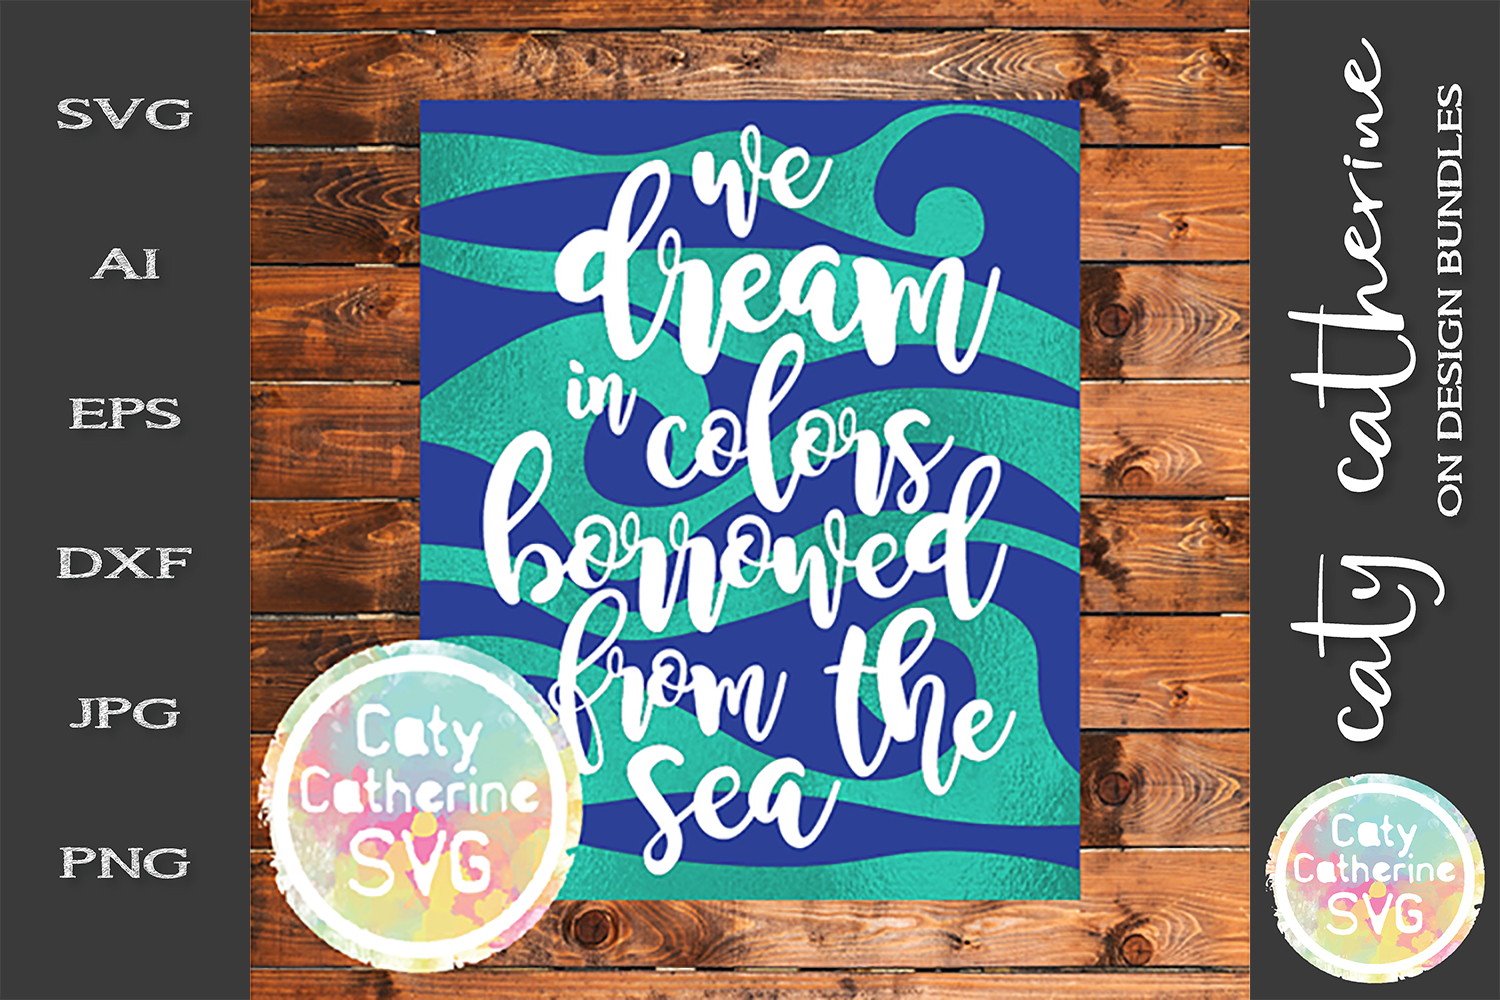 We Dream In Colors Borrowed From The Sea SVG Cut File example image 1